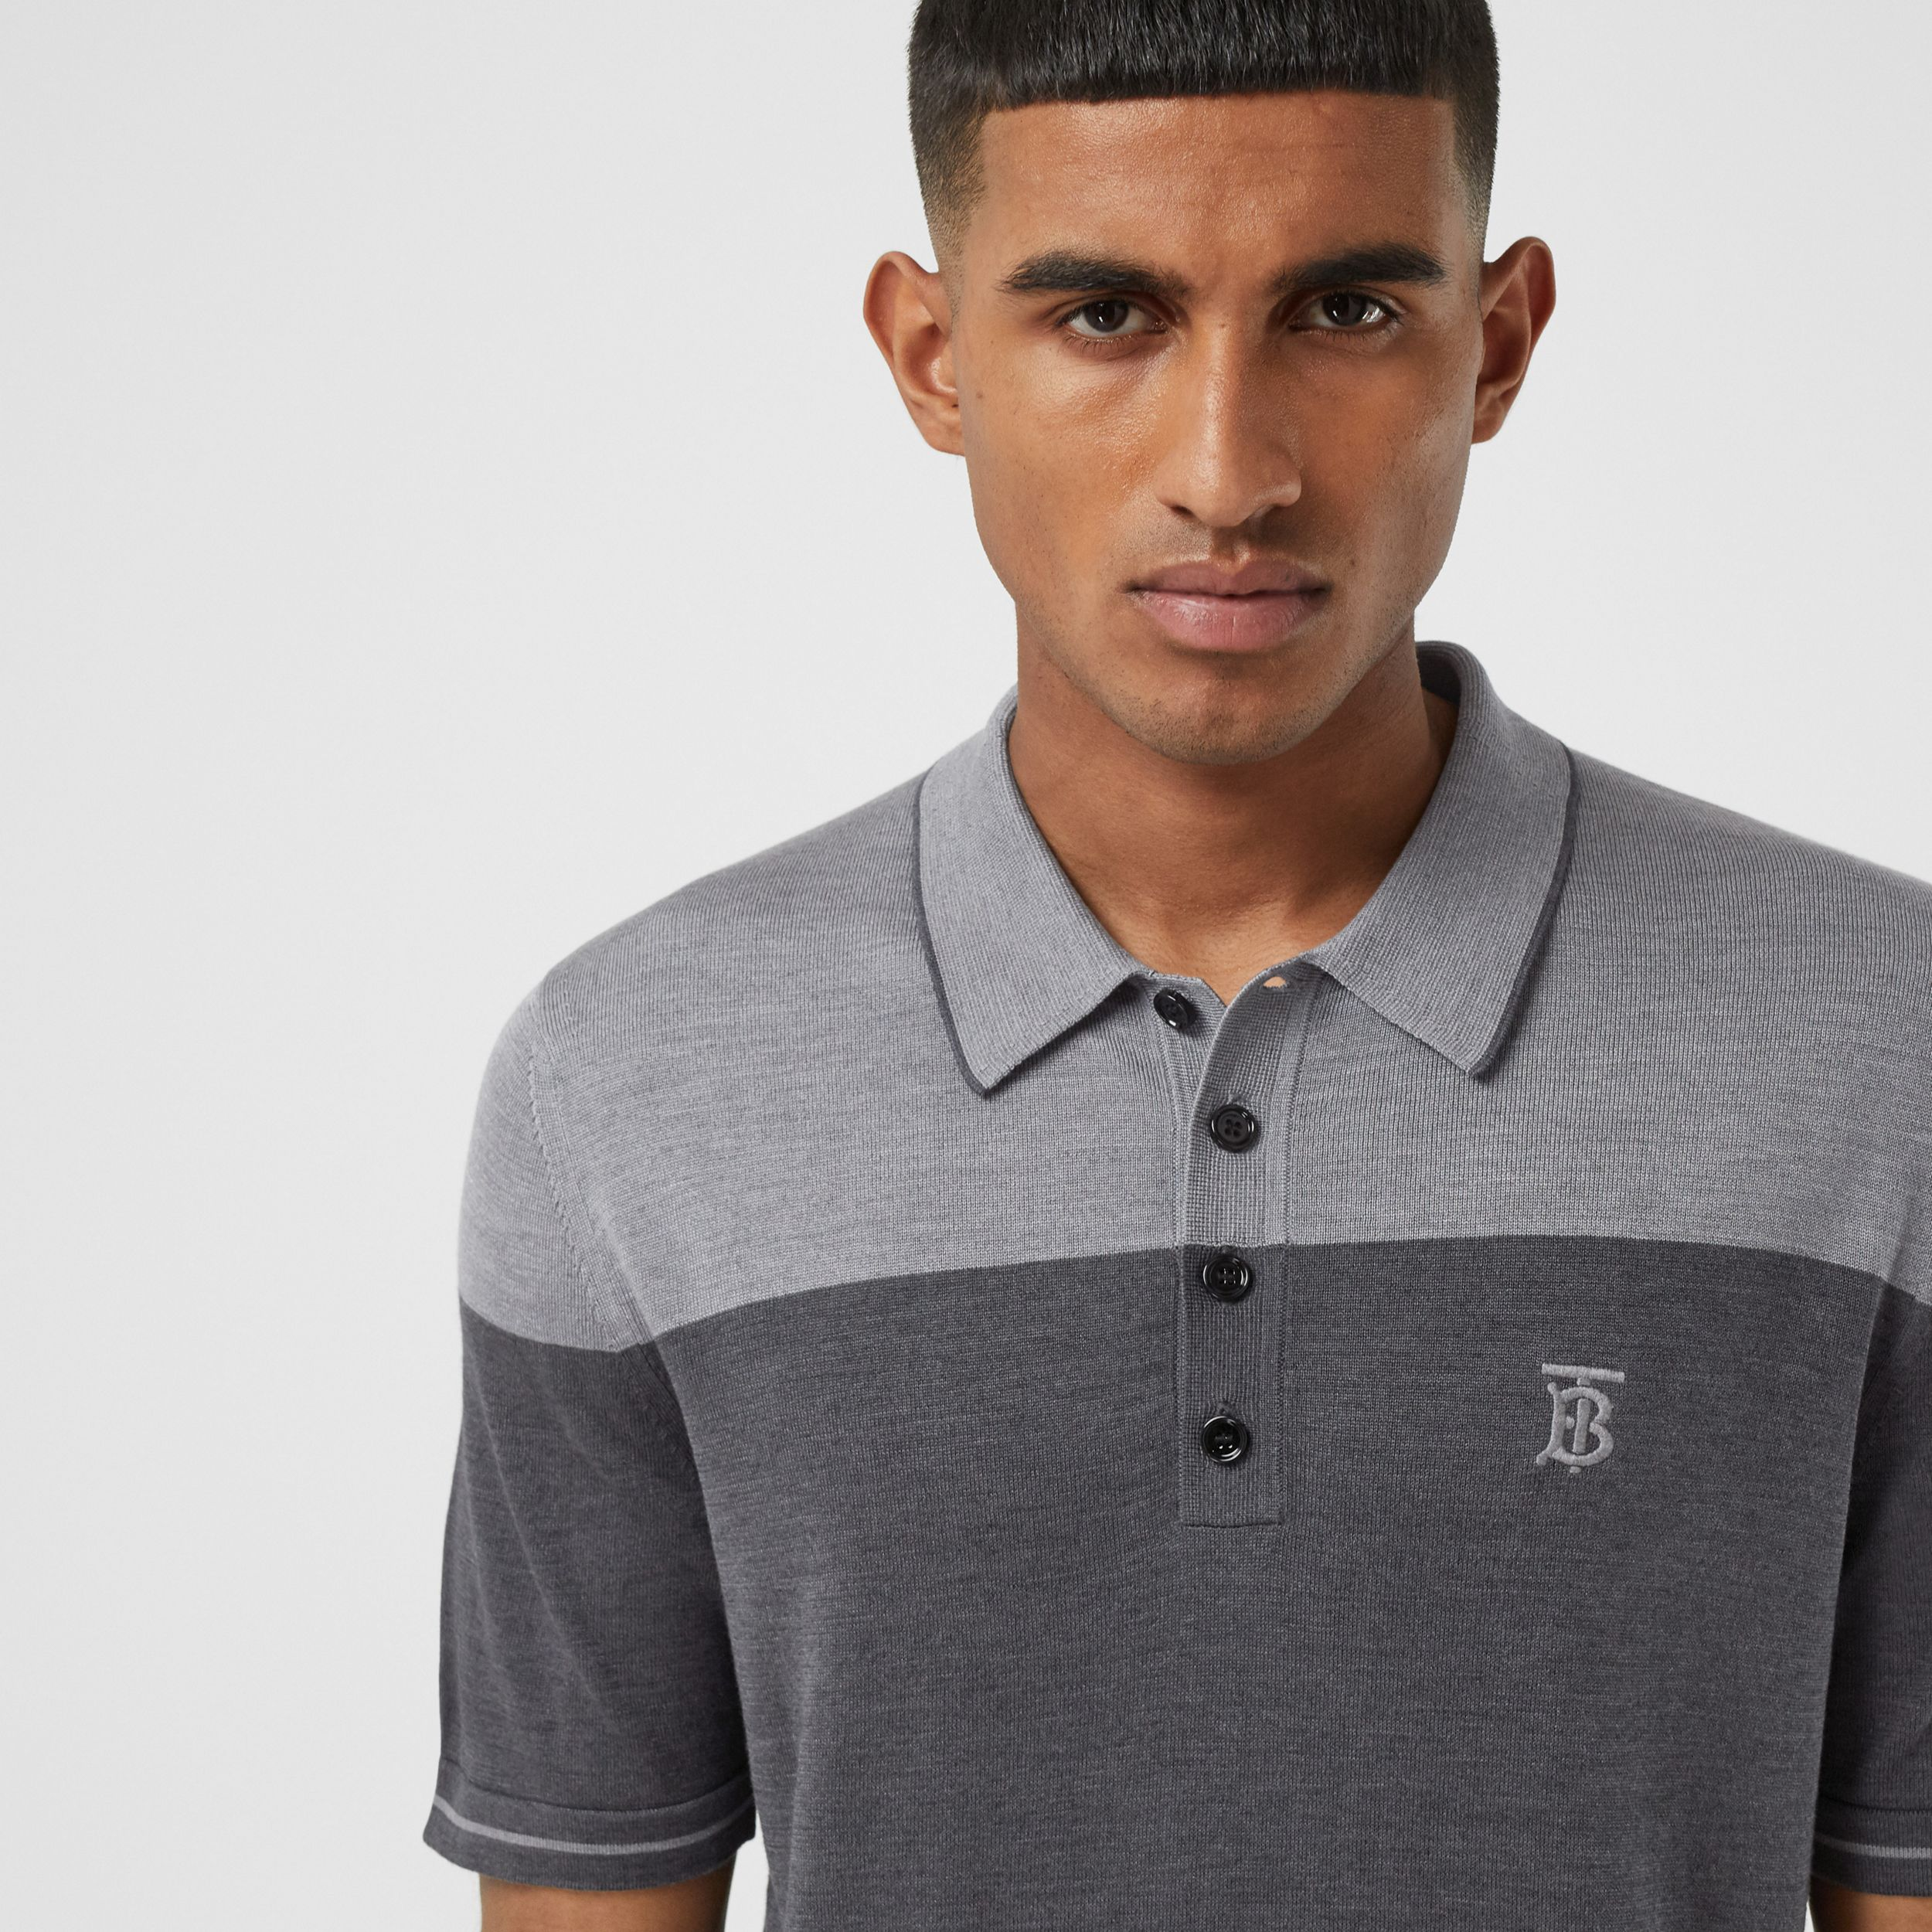 Monogram Motif Two-tone Silk Cashmere Polo Shirt in Charcoal - Men | Burberry - 2